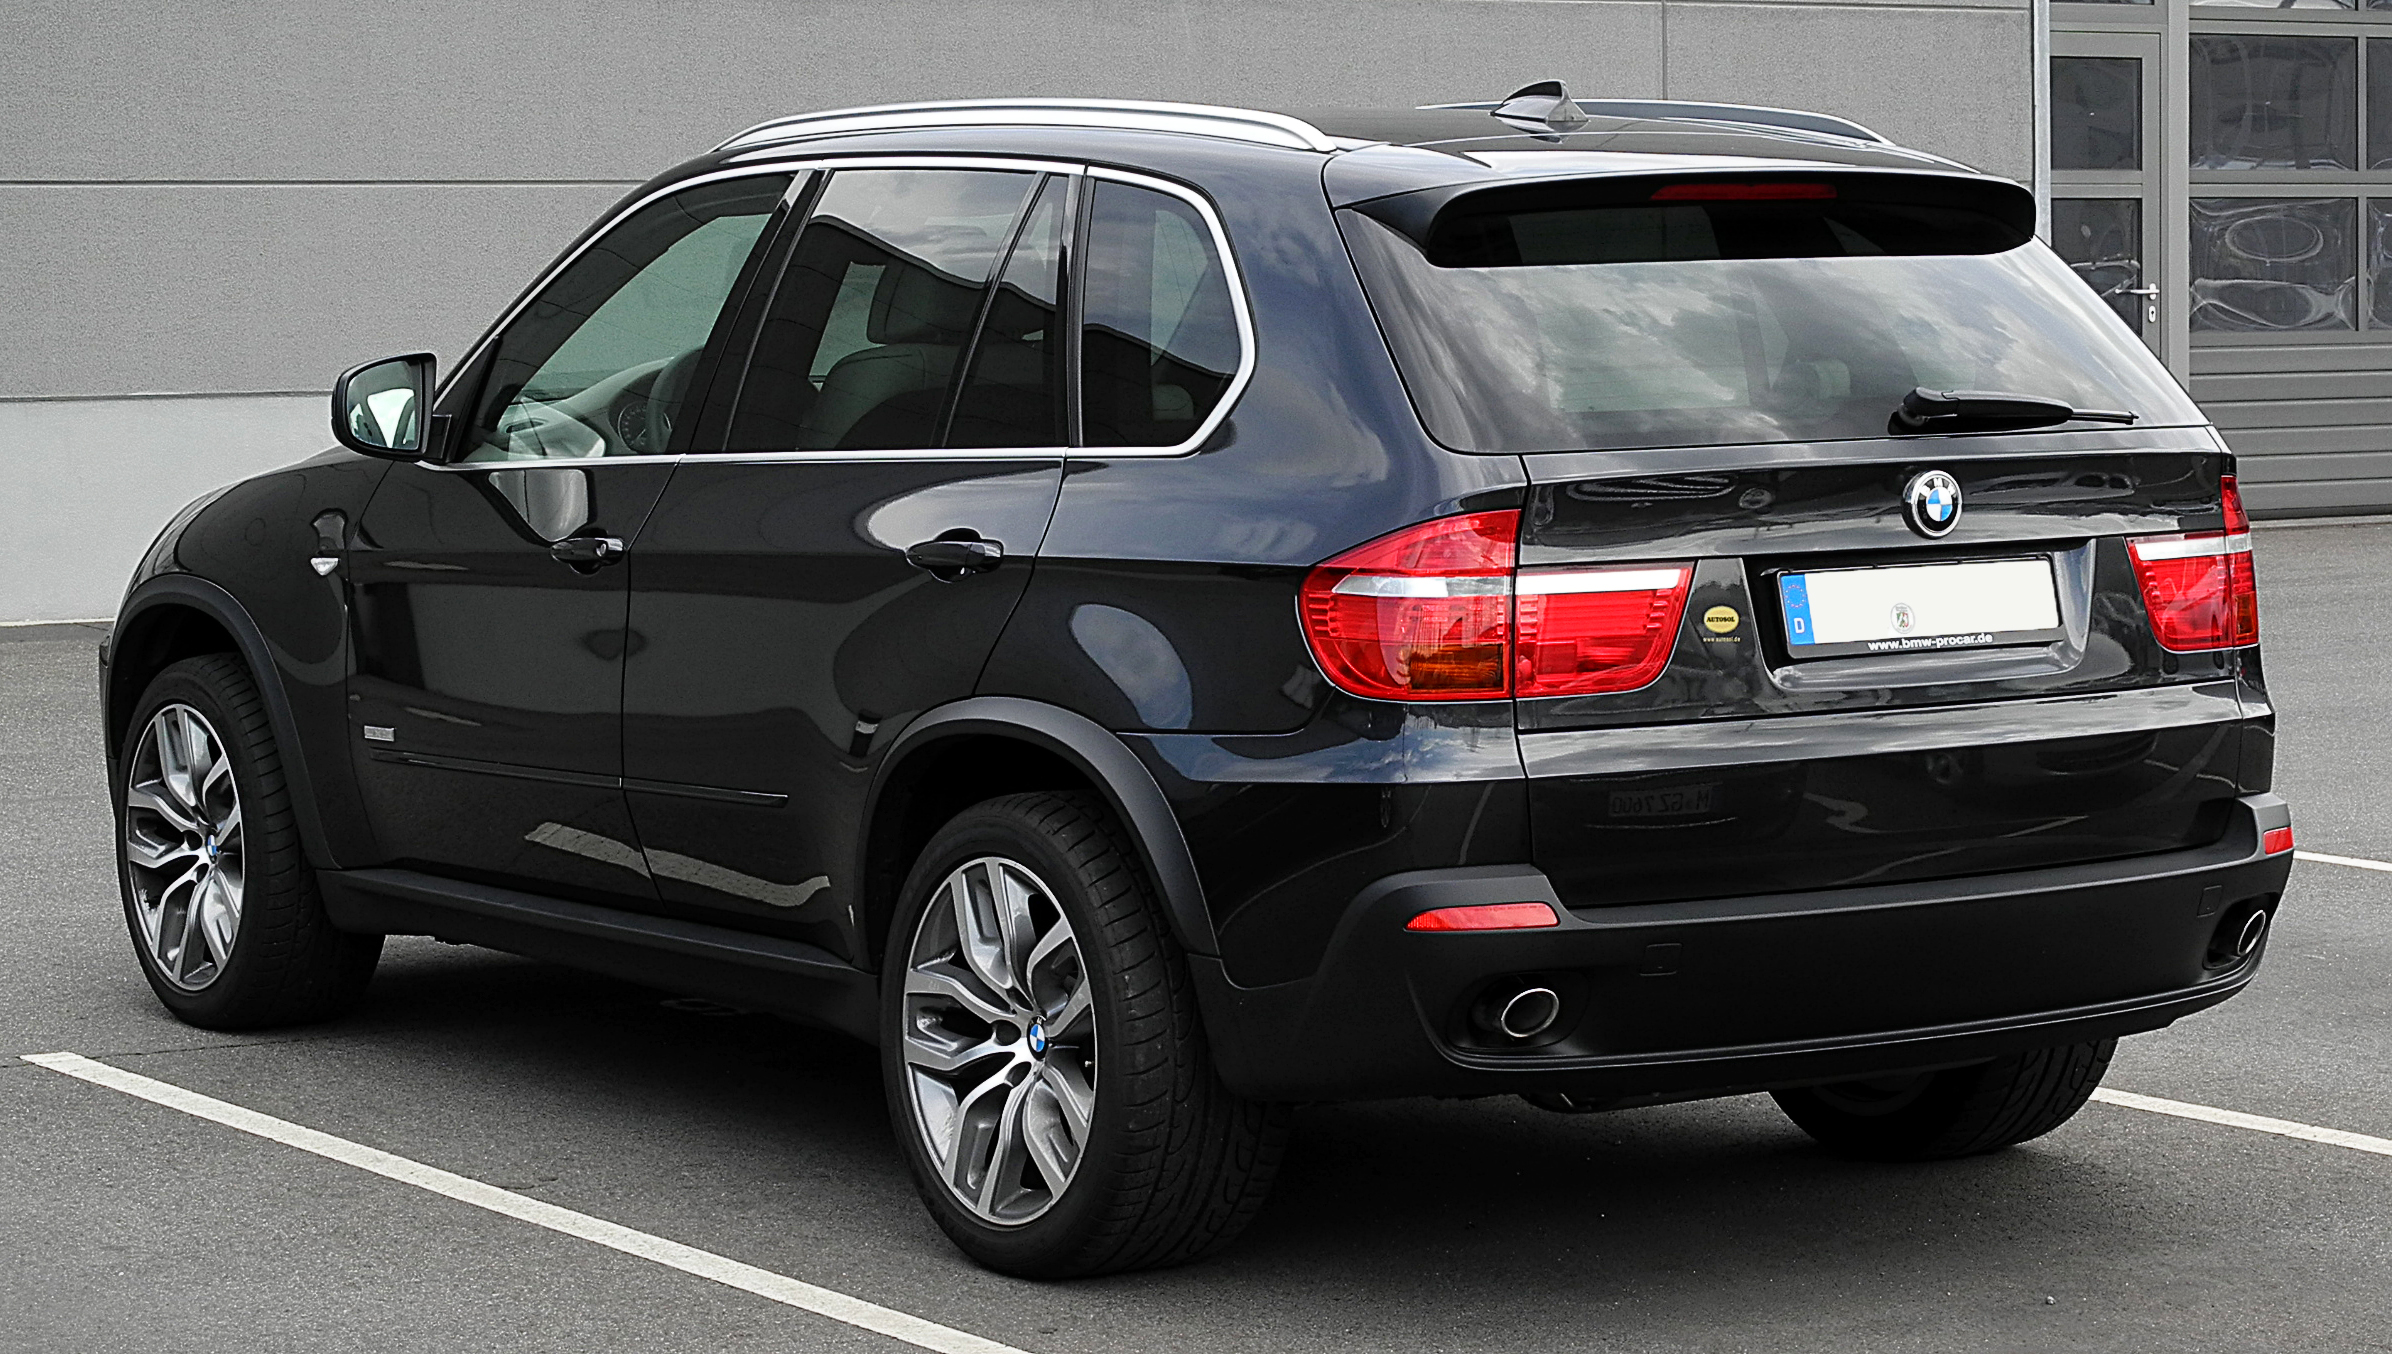 2011 Bmw X5 (e70) - pictures, information and specs - Auto ...